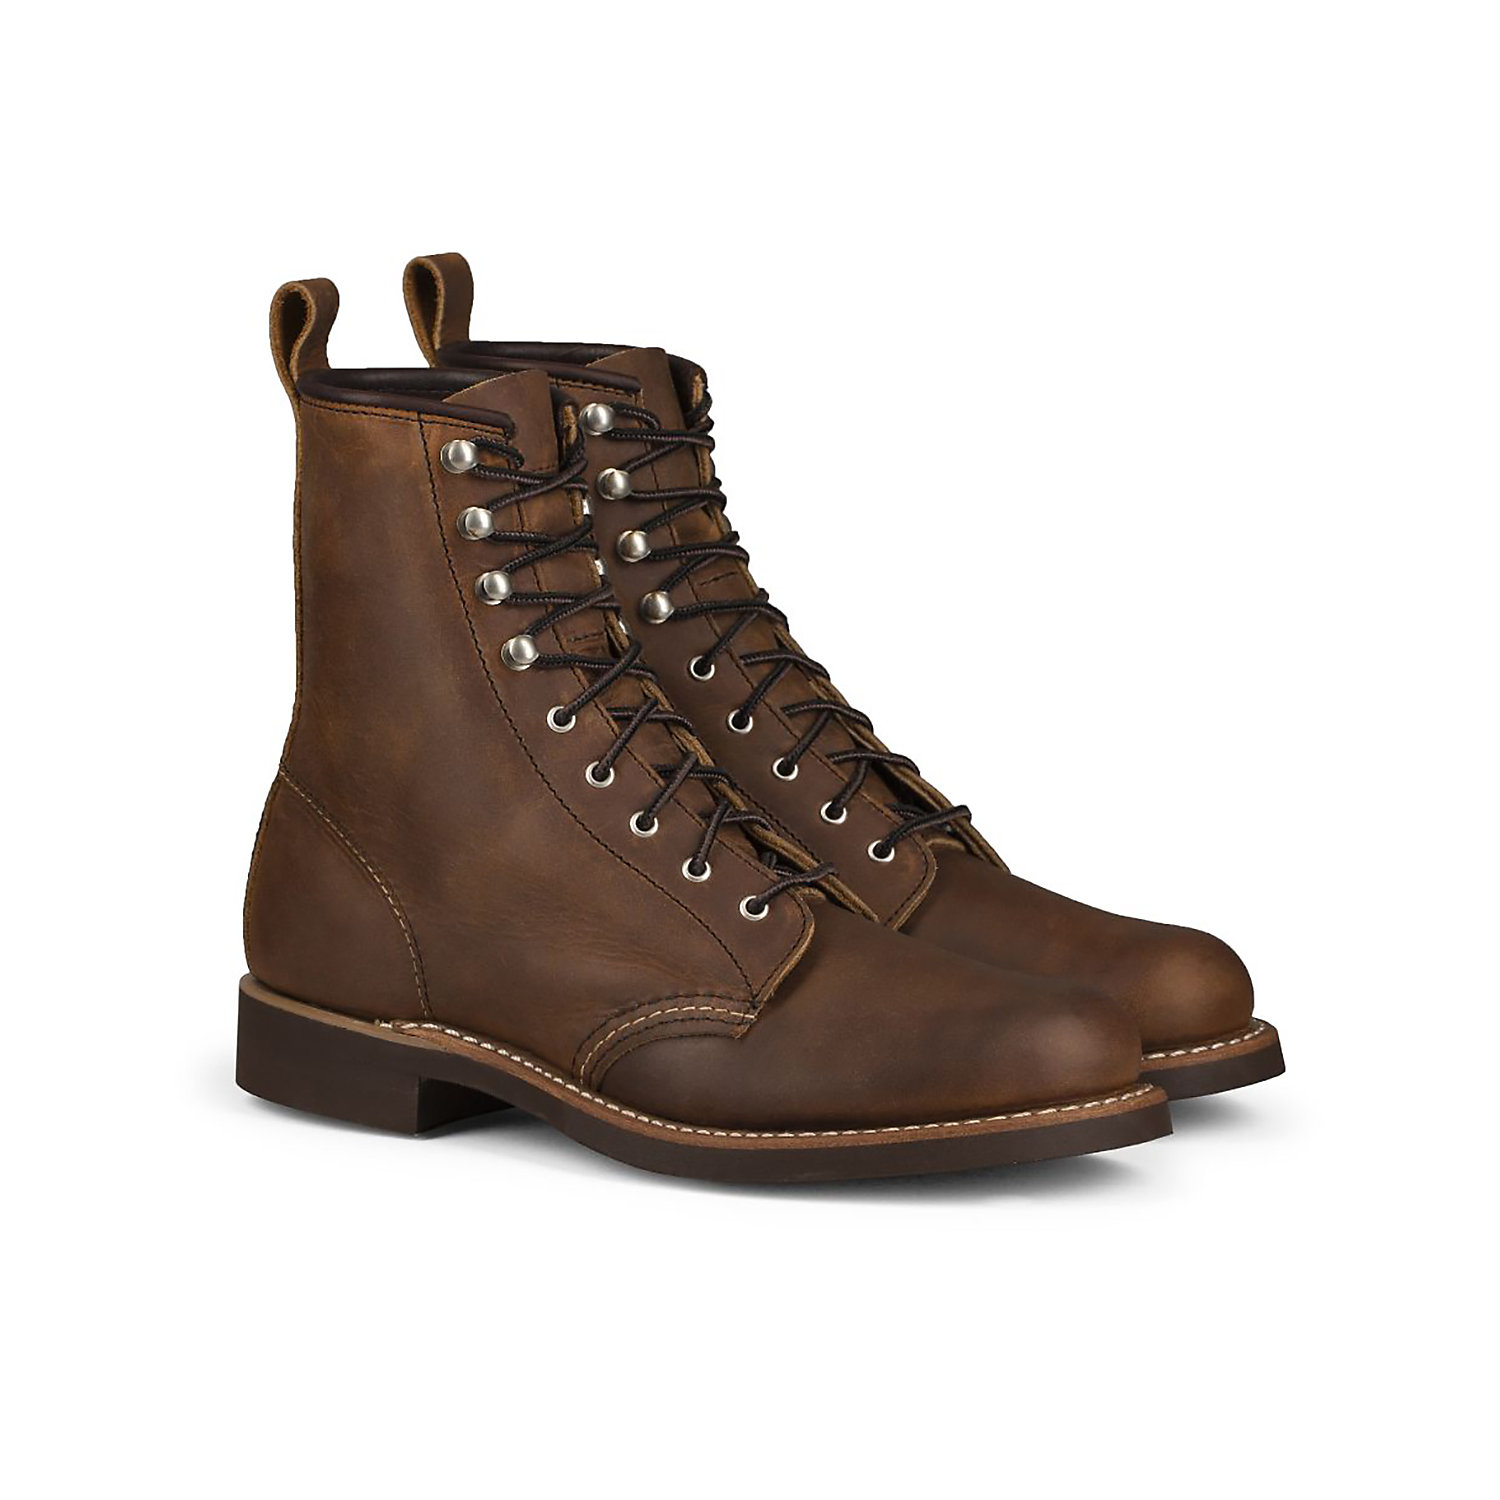 Red Wing Boots For Women